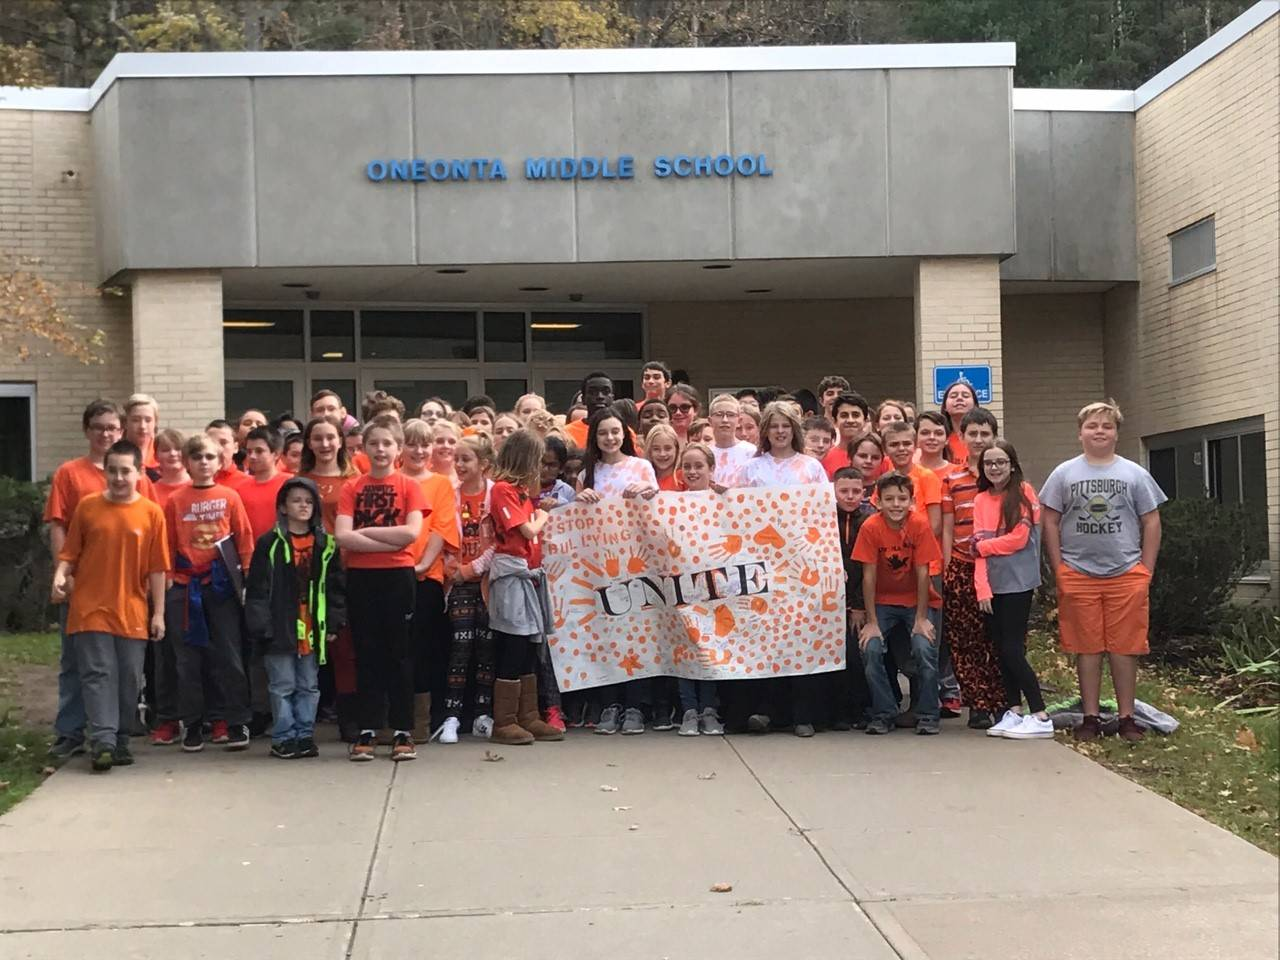 Students gathered outside the OMS school.